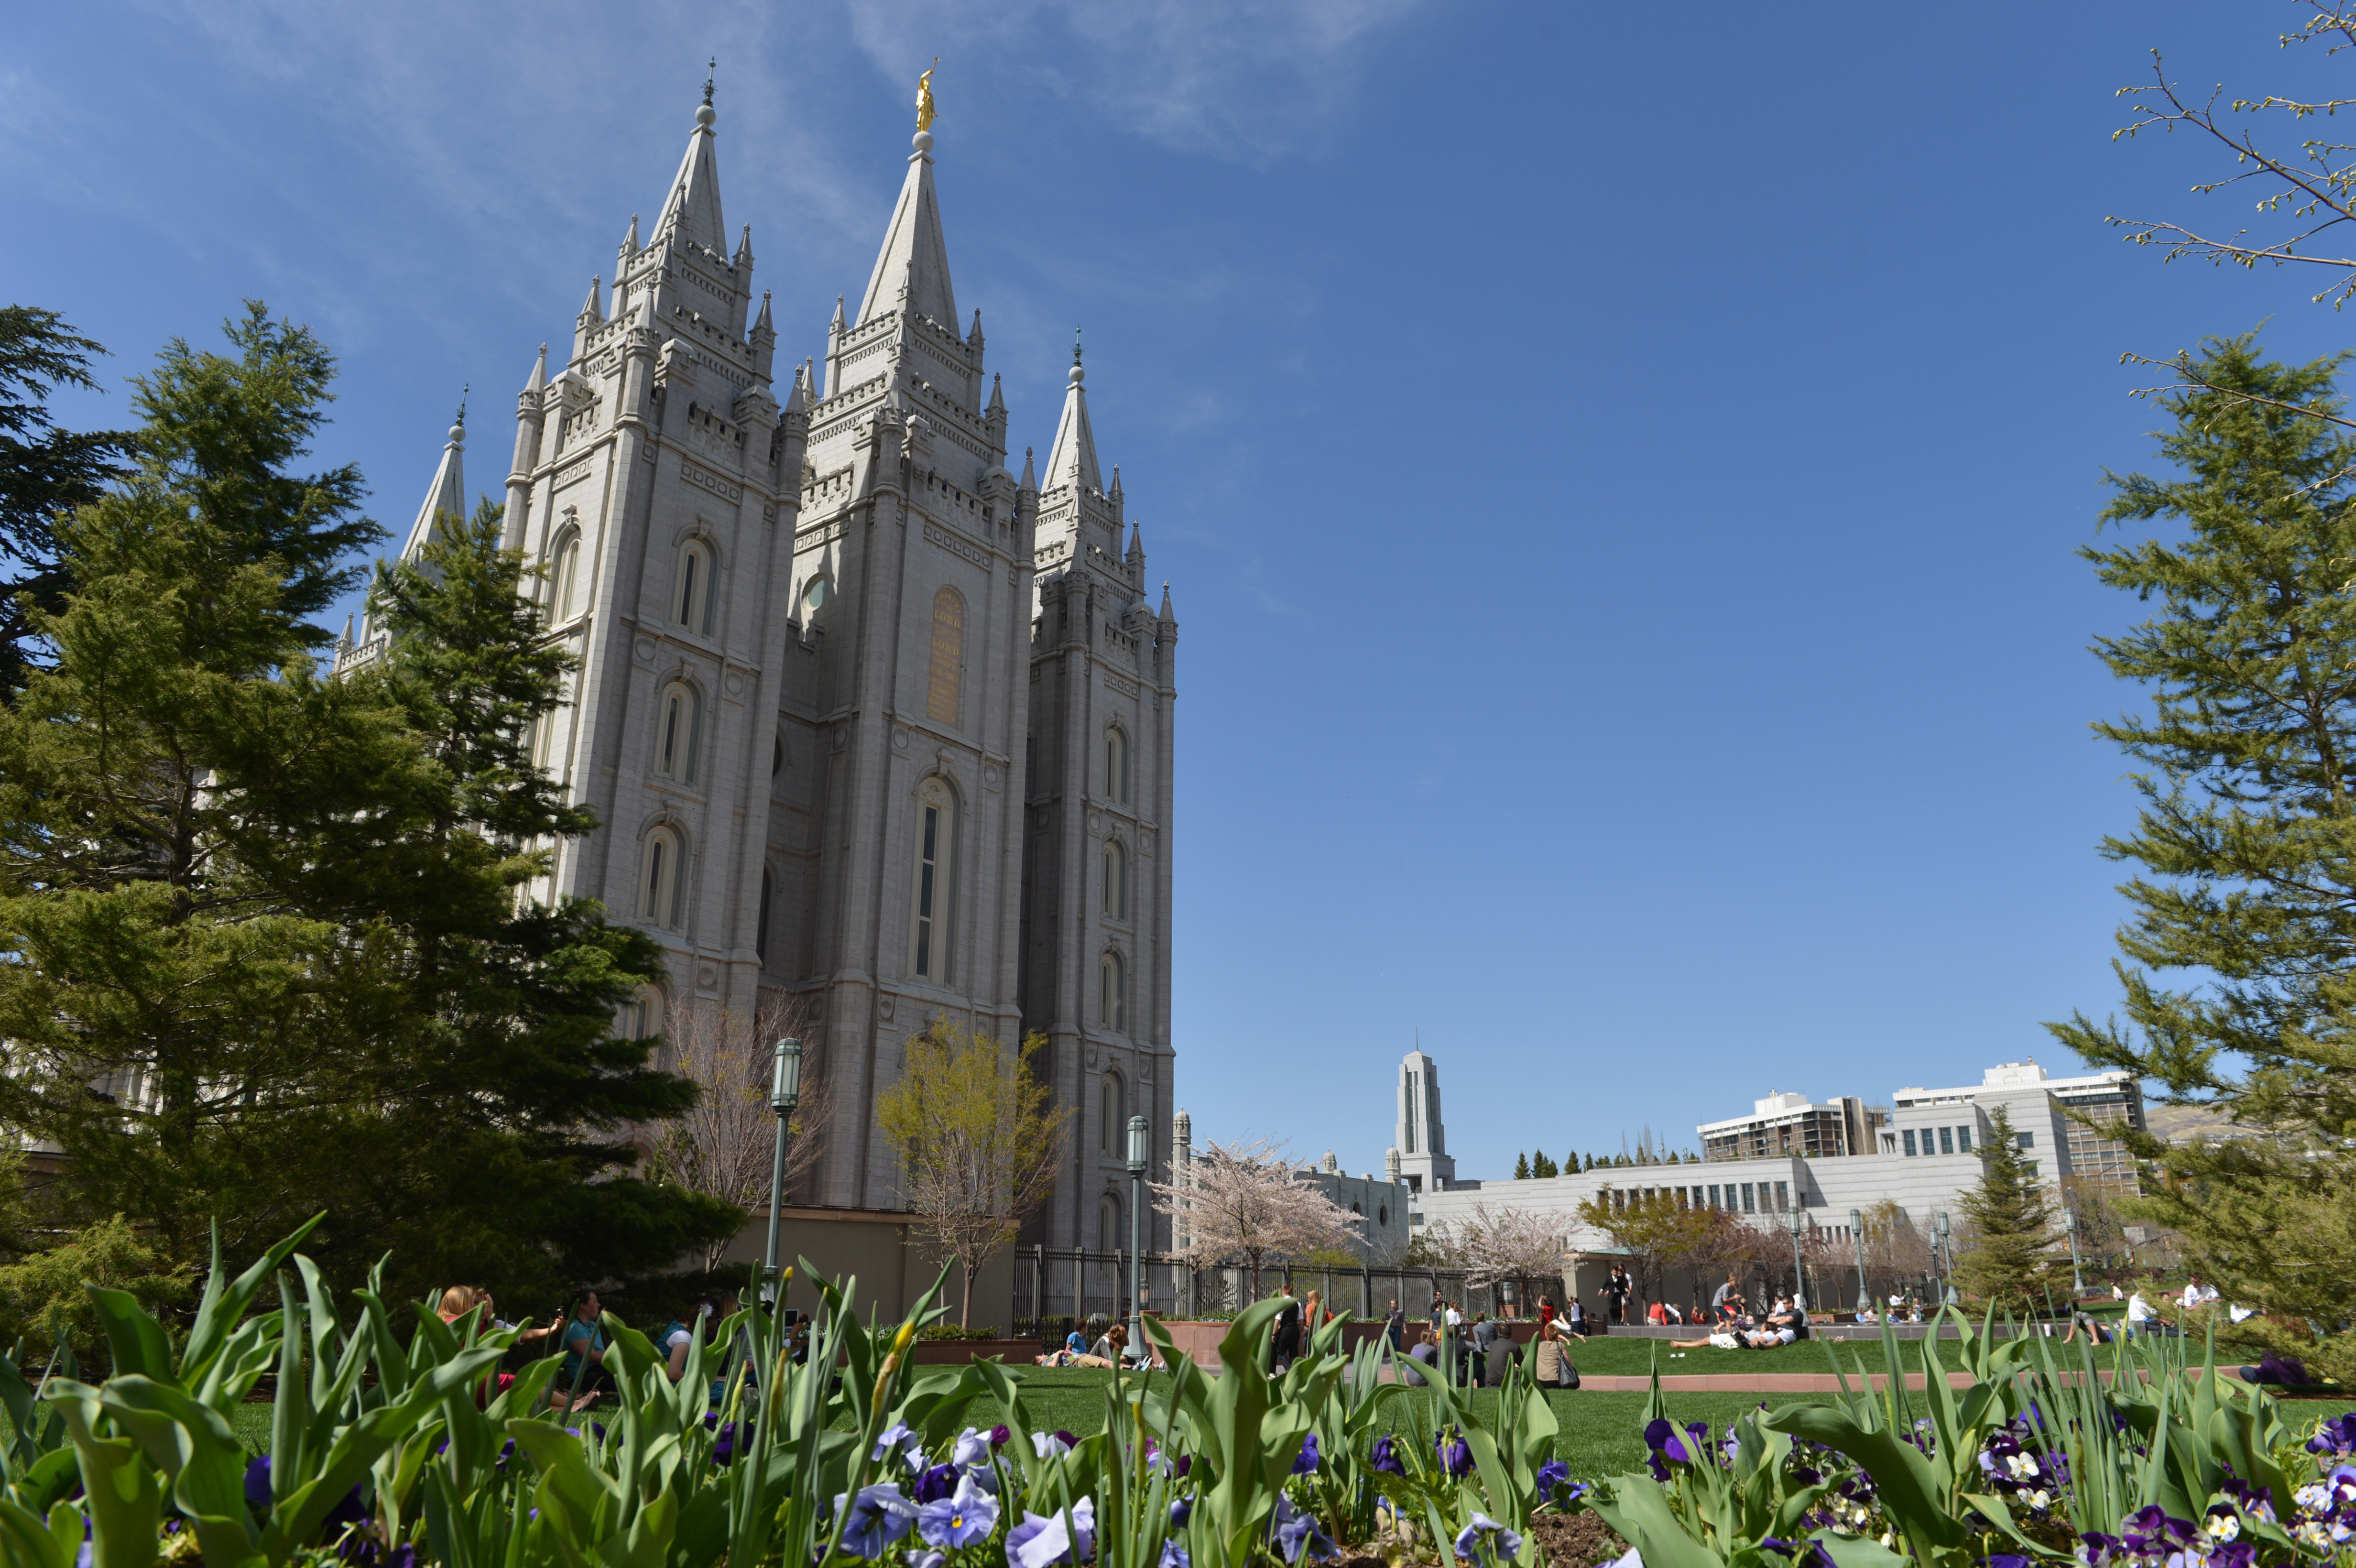 Photo courtesy of mormonnewsroom.org